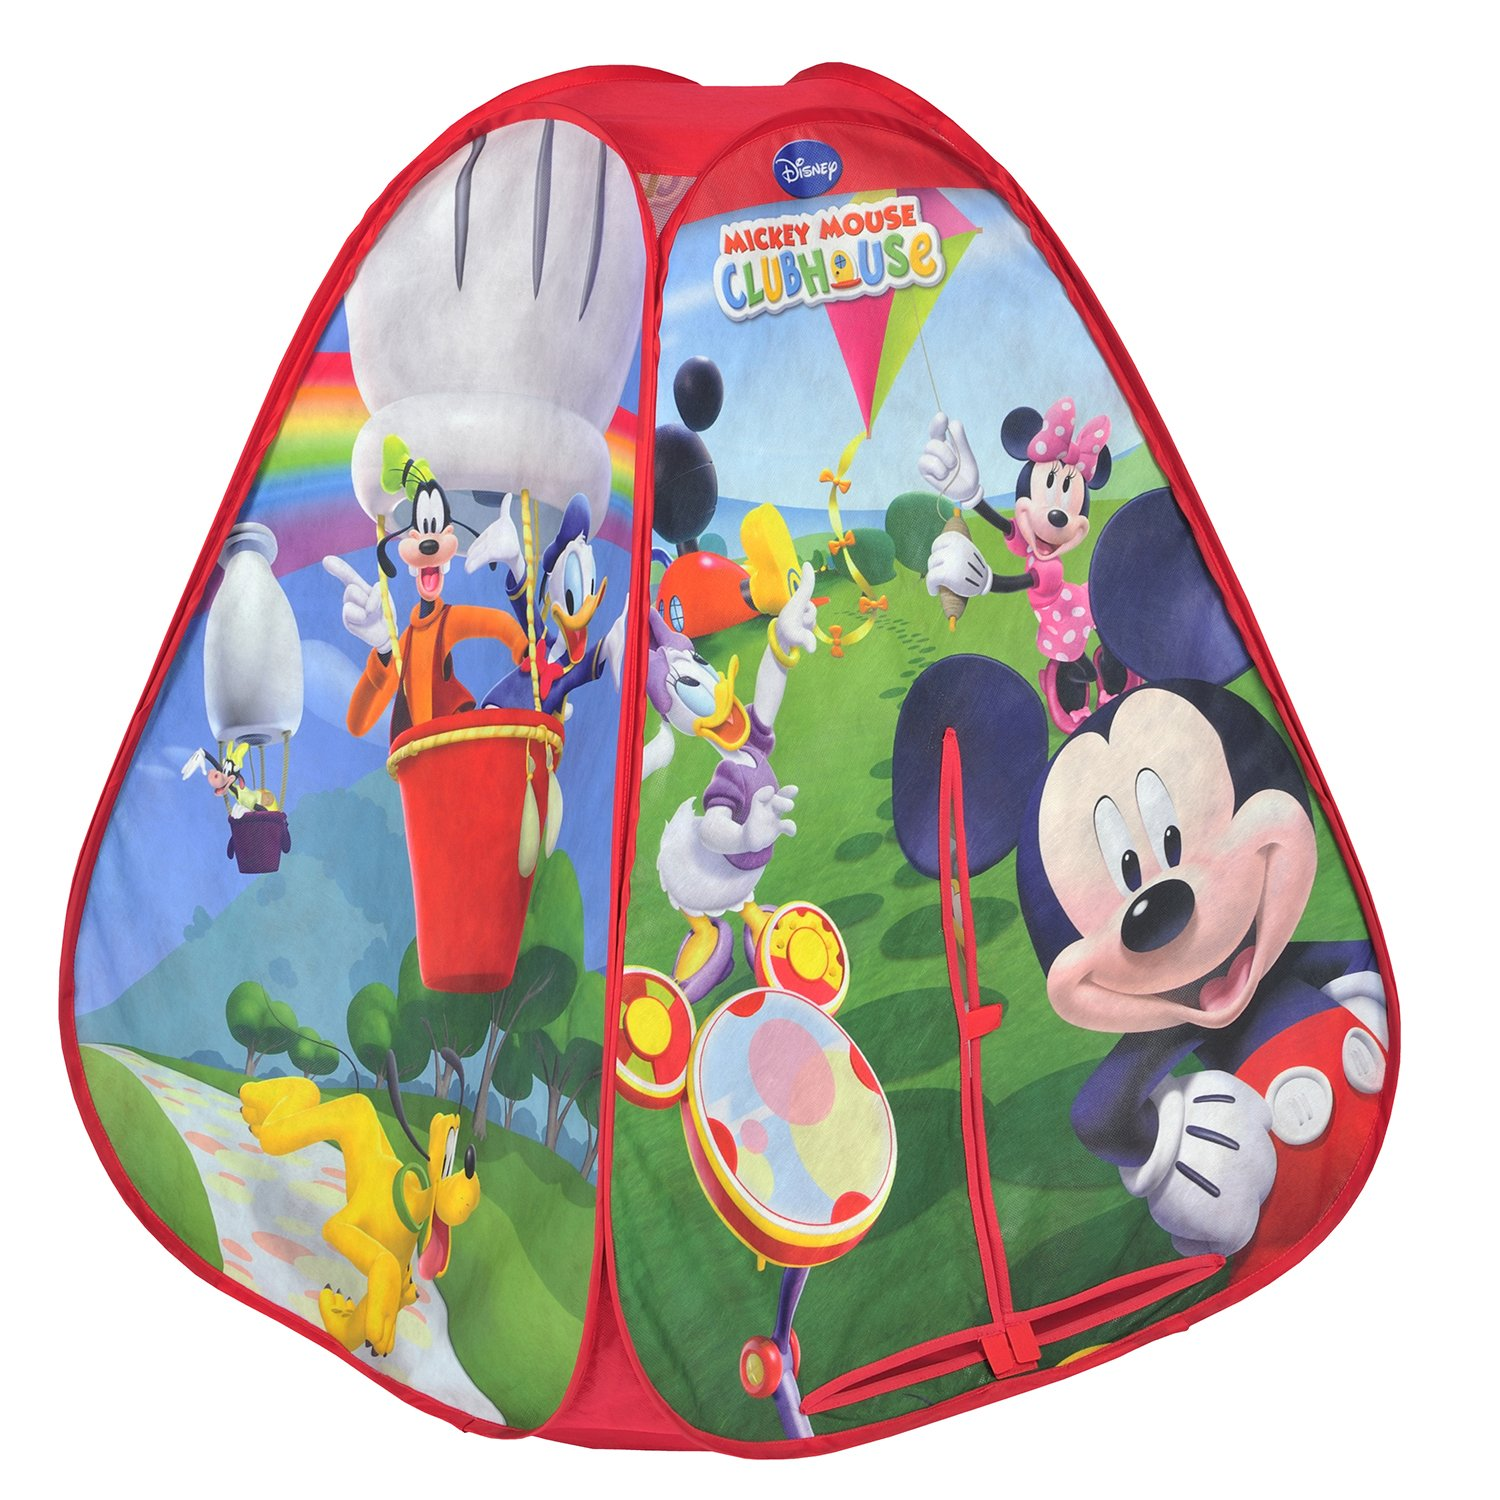 Buy Disney 4 Panel Popup Tent Multi Color (Mickey Mouse Club House) Online at Low Prices in India - Amazon.in  sc 1 st  Amazon India & Buy Disney 4 Panel Popup Tent Multi Color (Mickey Mouse Club ...